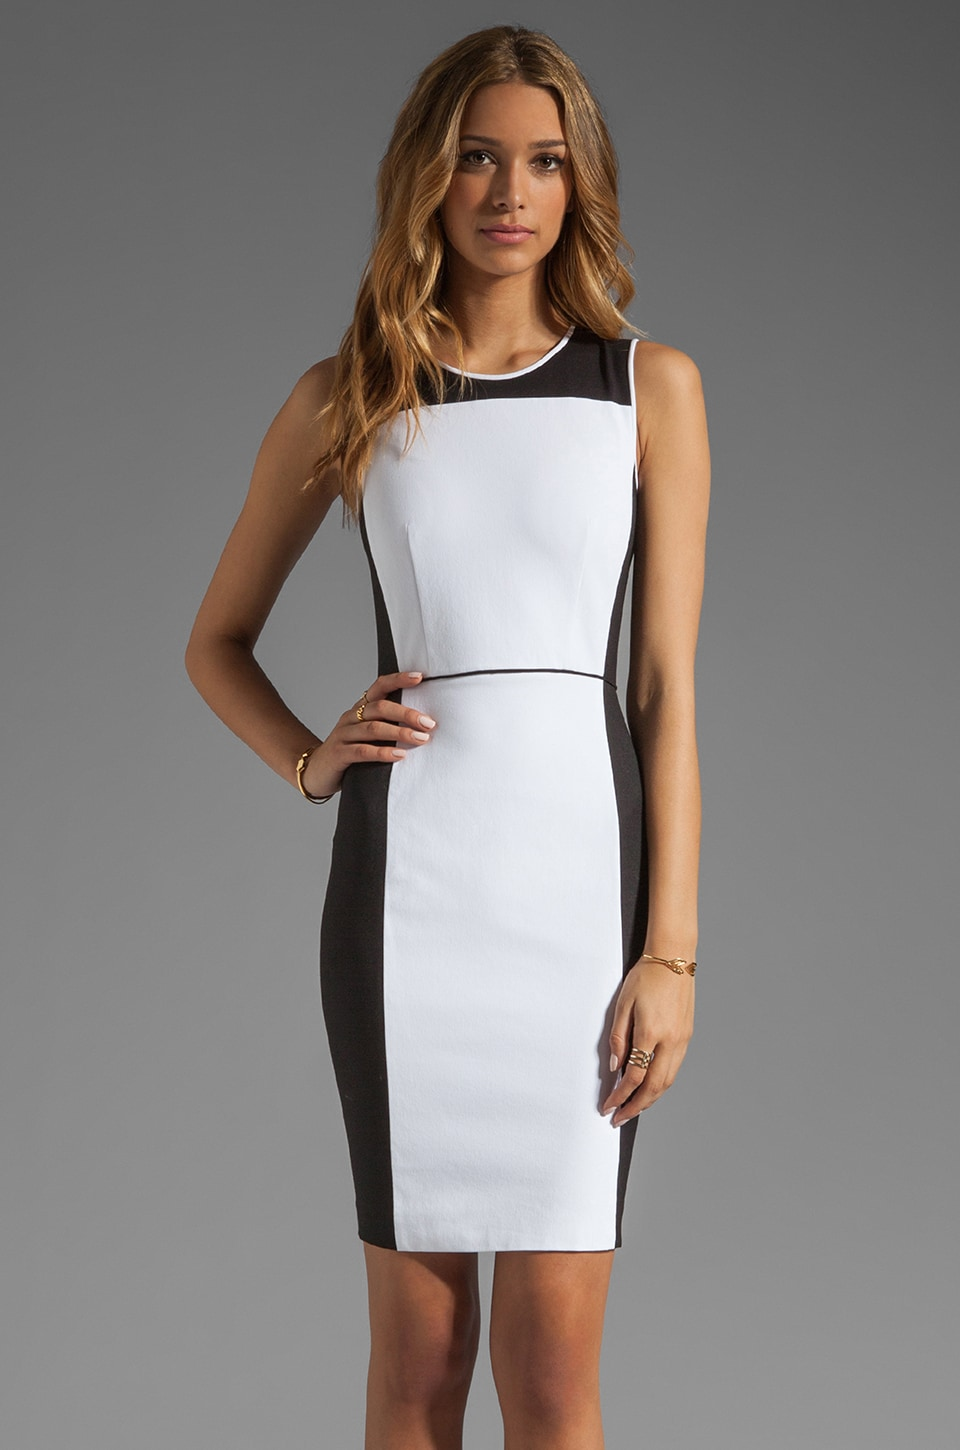 Theory Elite Nyasha Dress in White/Black